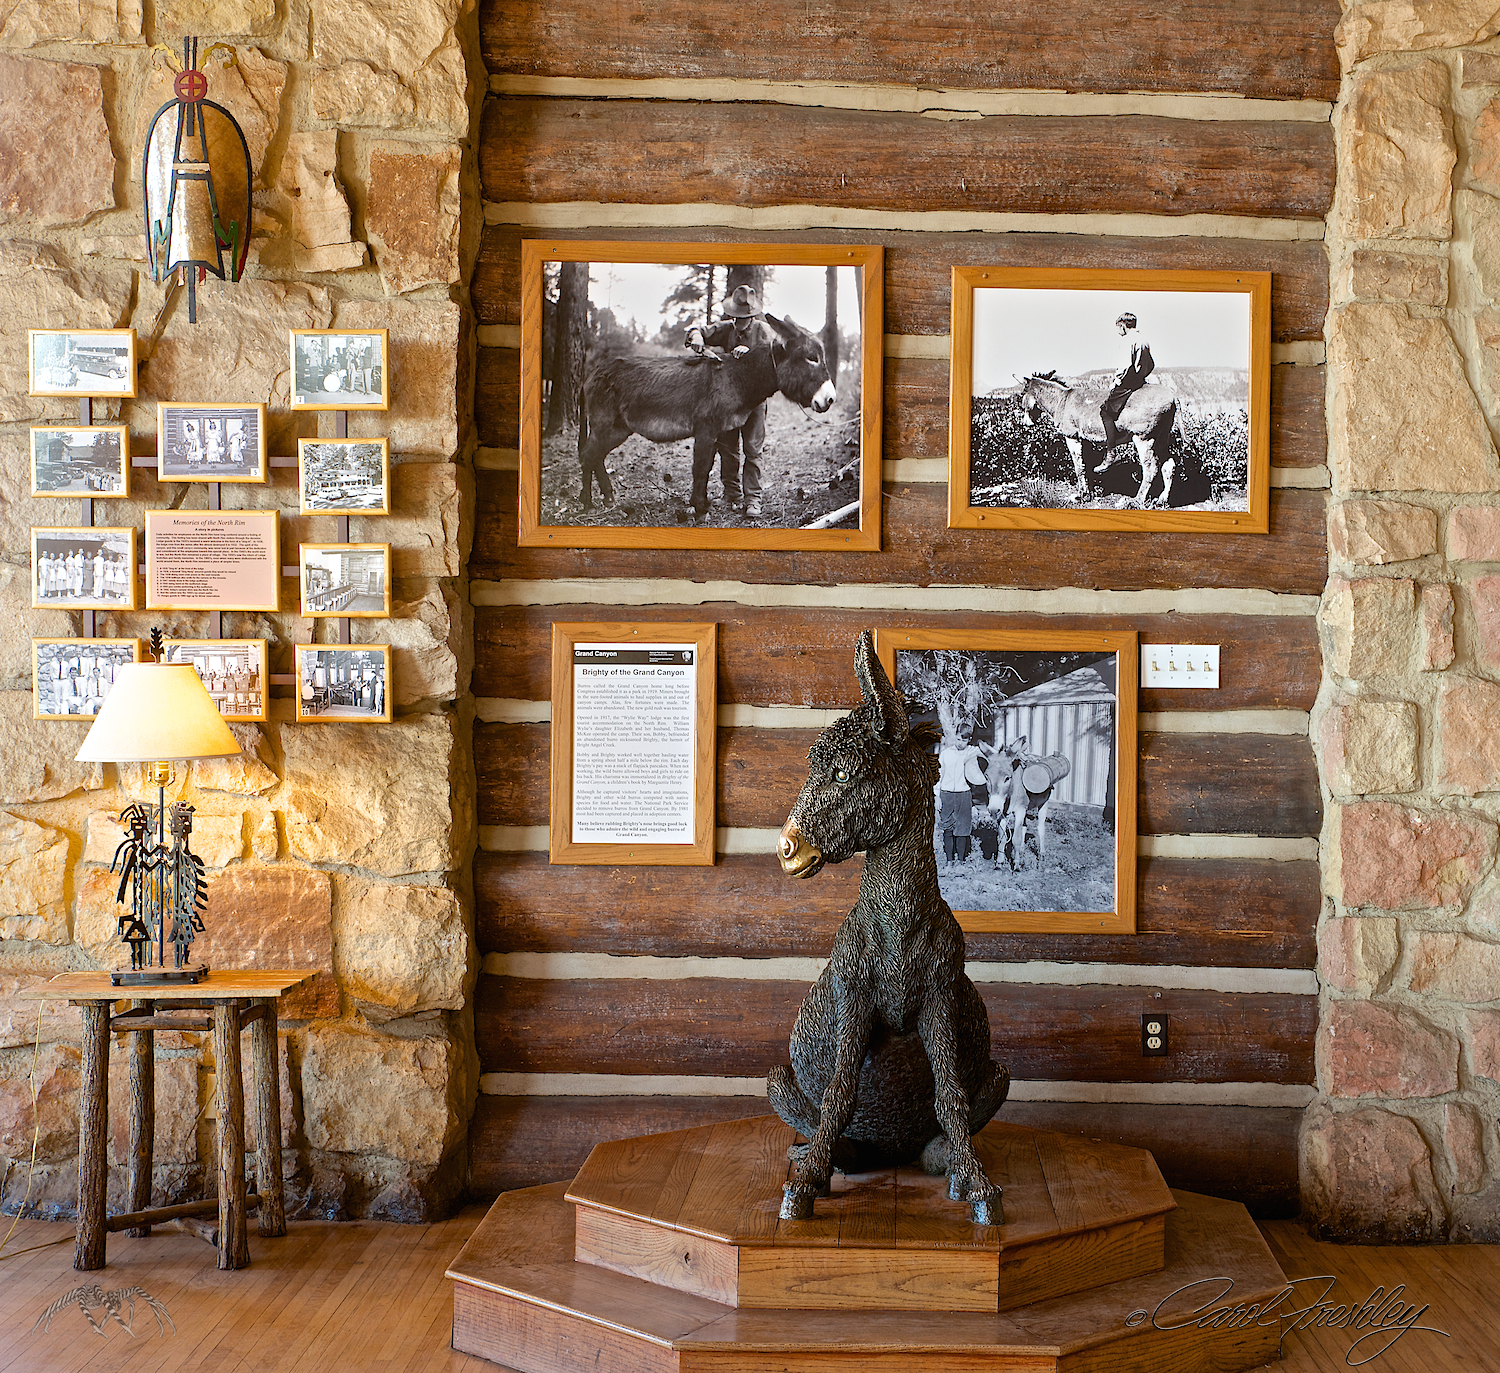 Prominent exhibit at the Lodge. Pack animals continue to play a significant role in Grand Canyon activities.